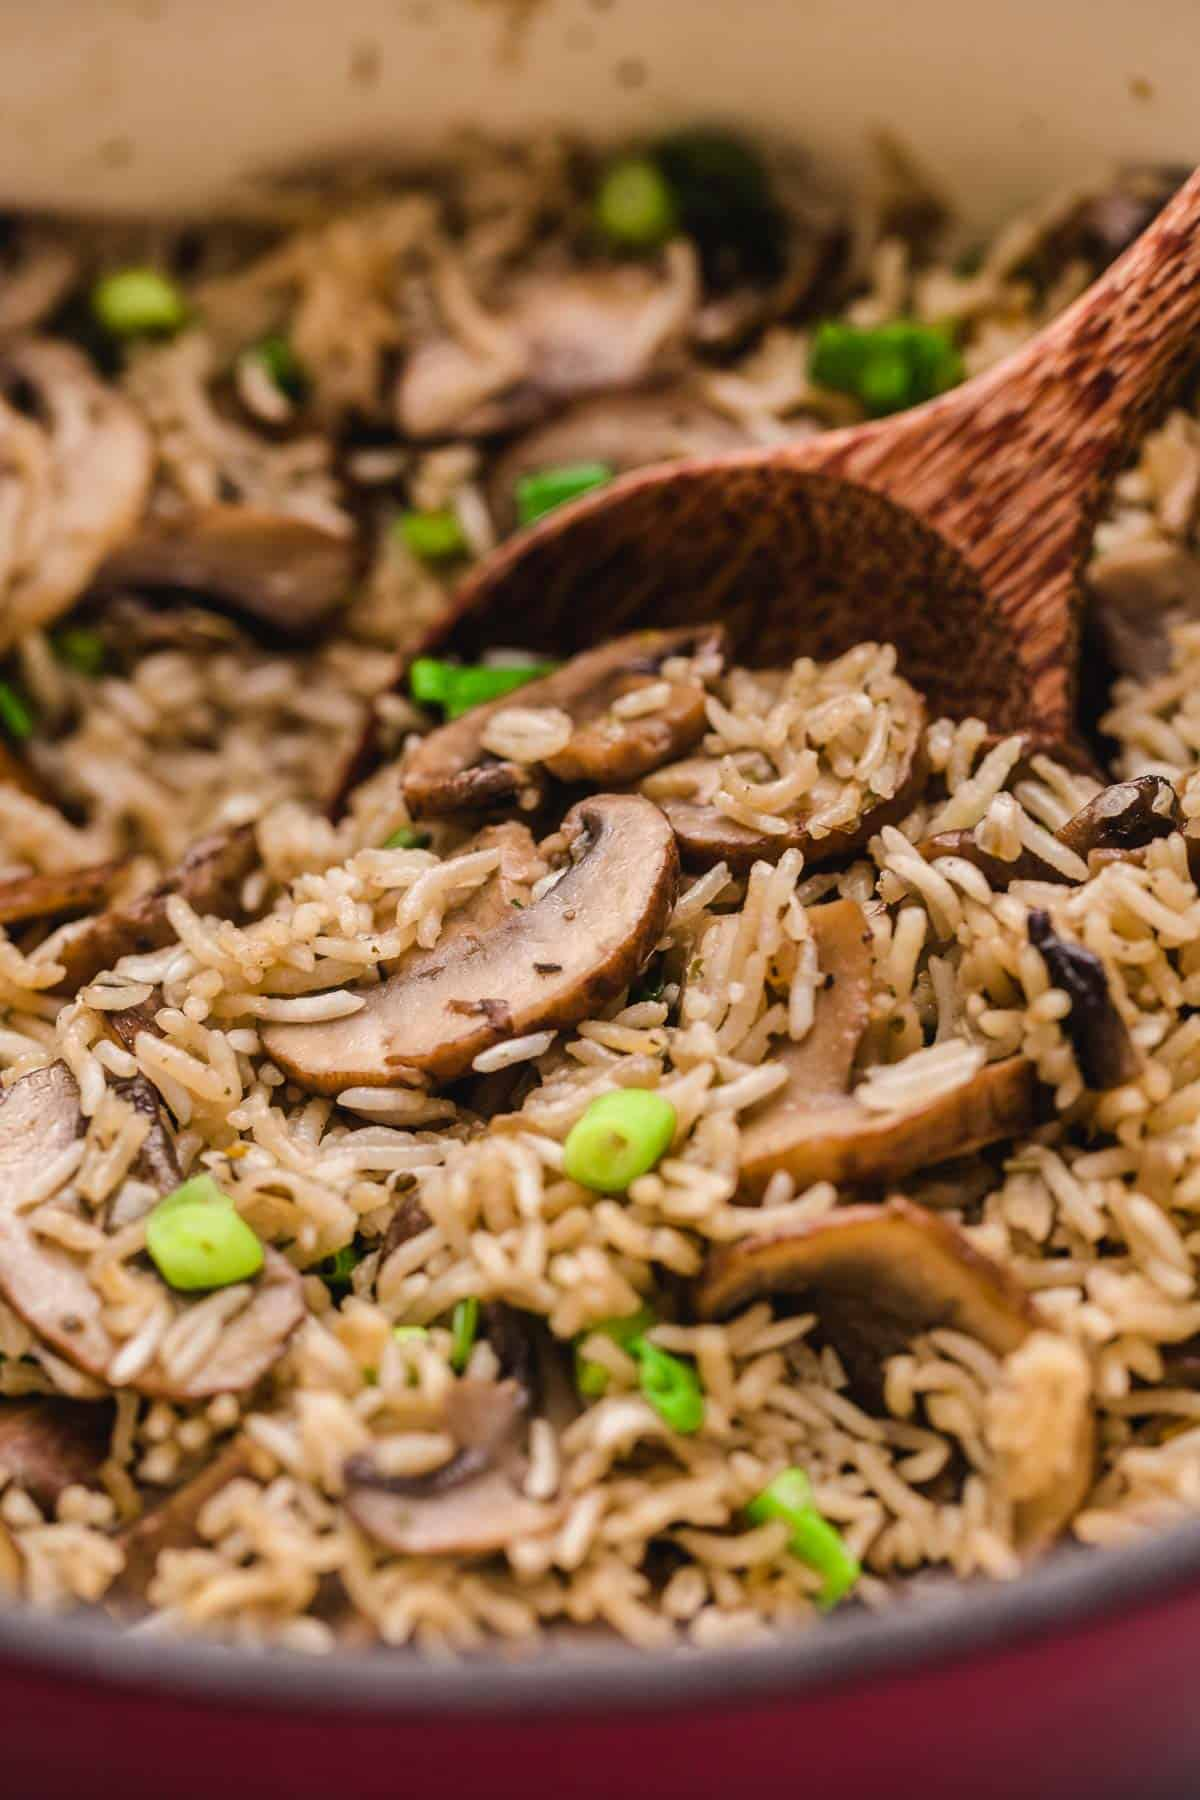 Mushroom rice in a pot with a wooden serving spoon